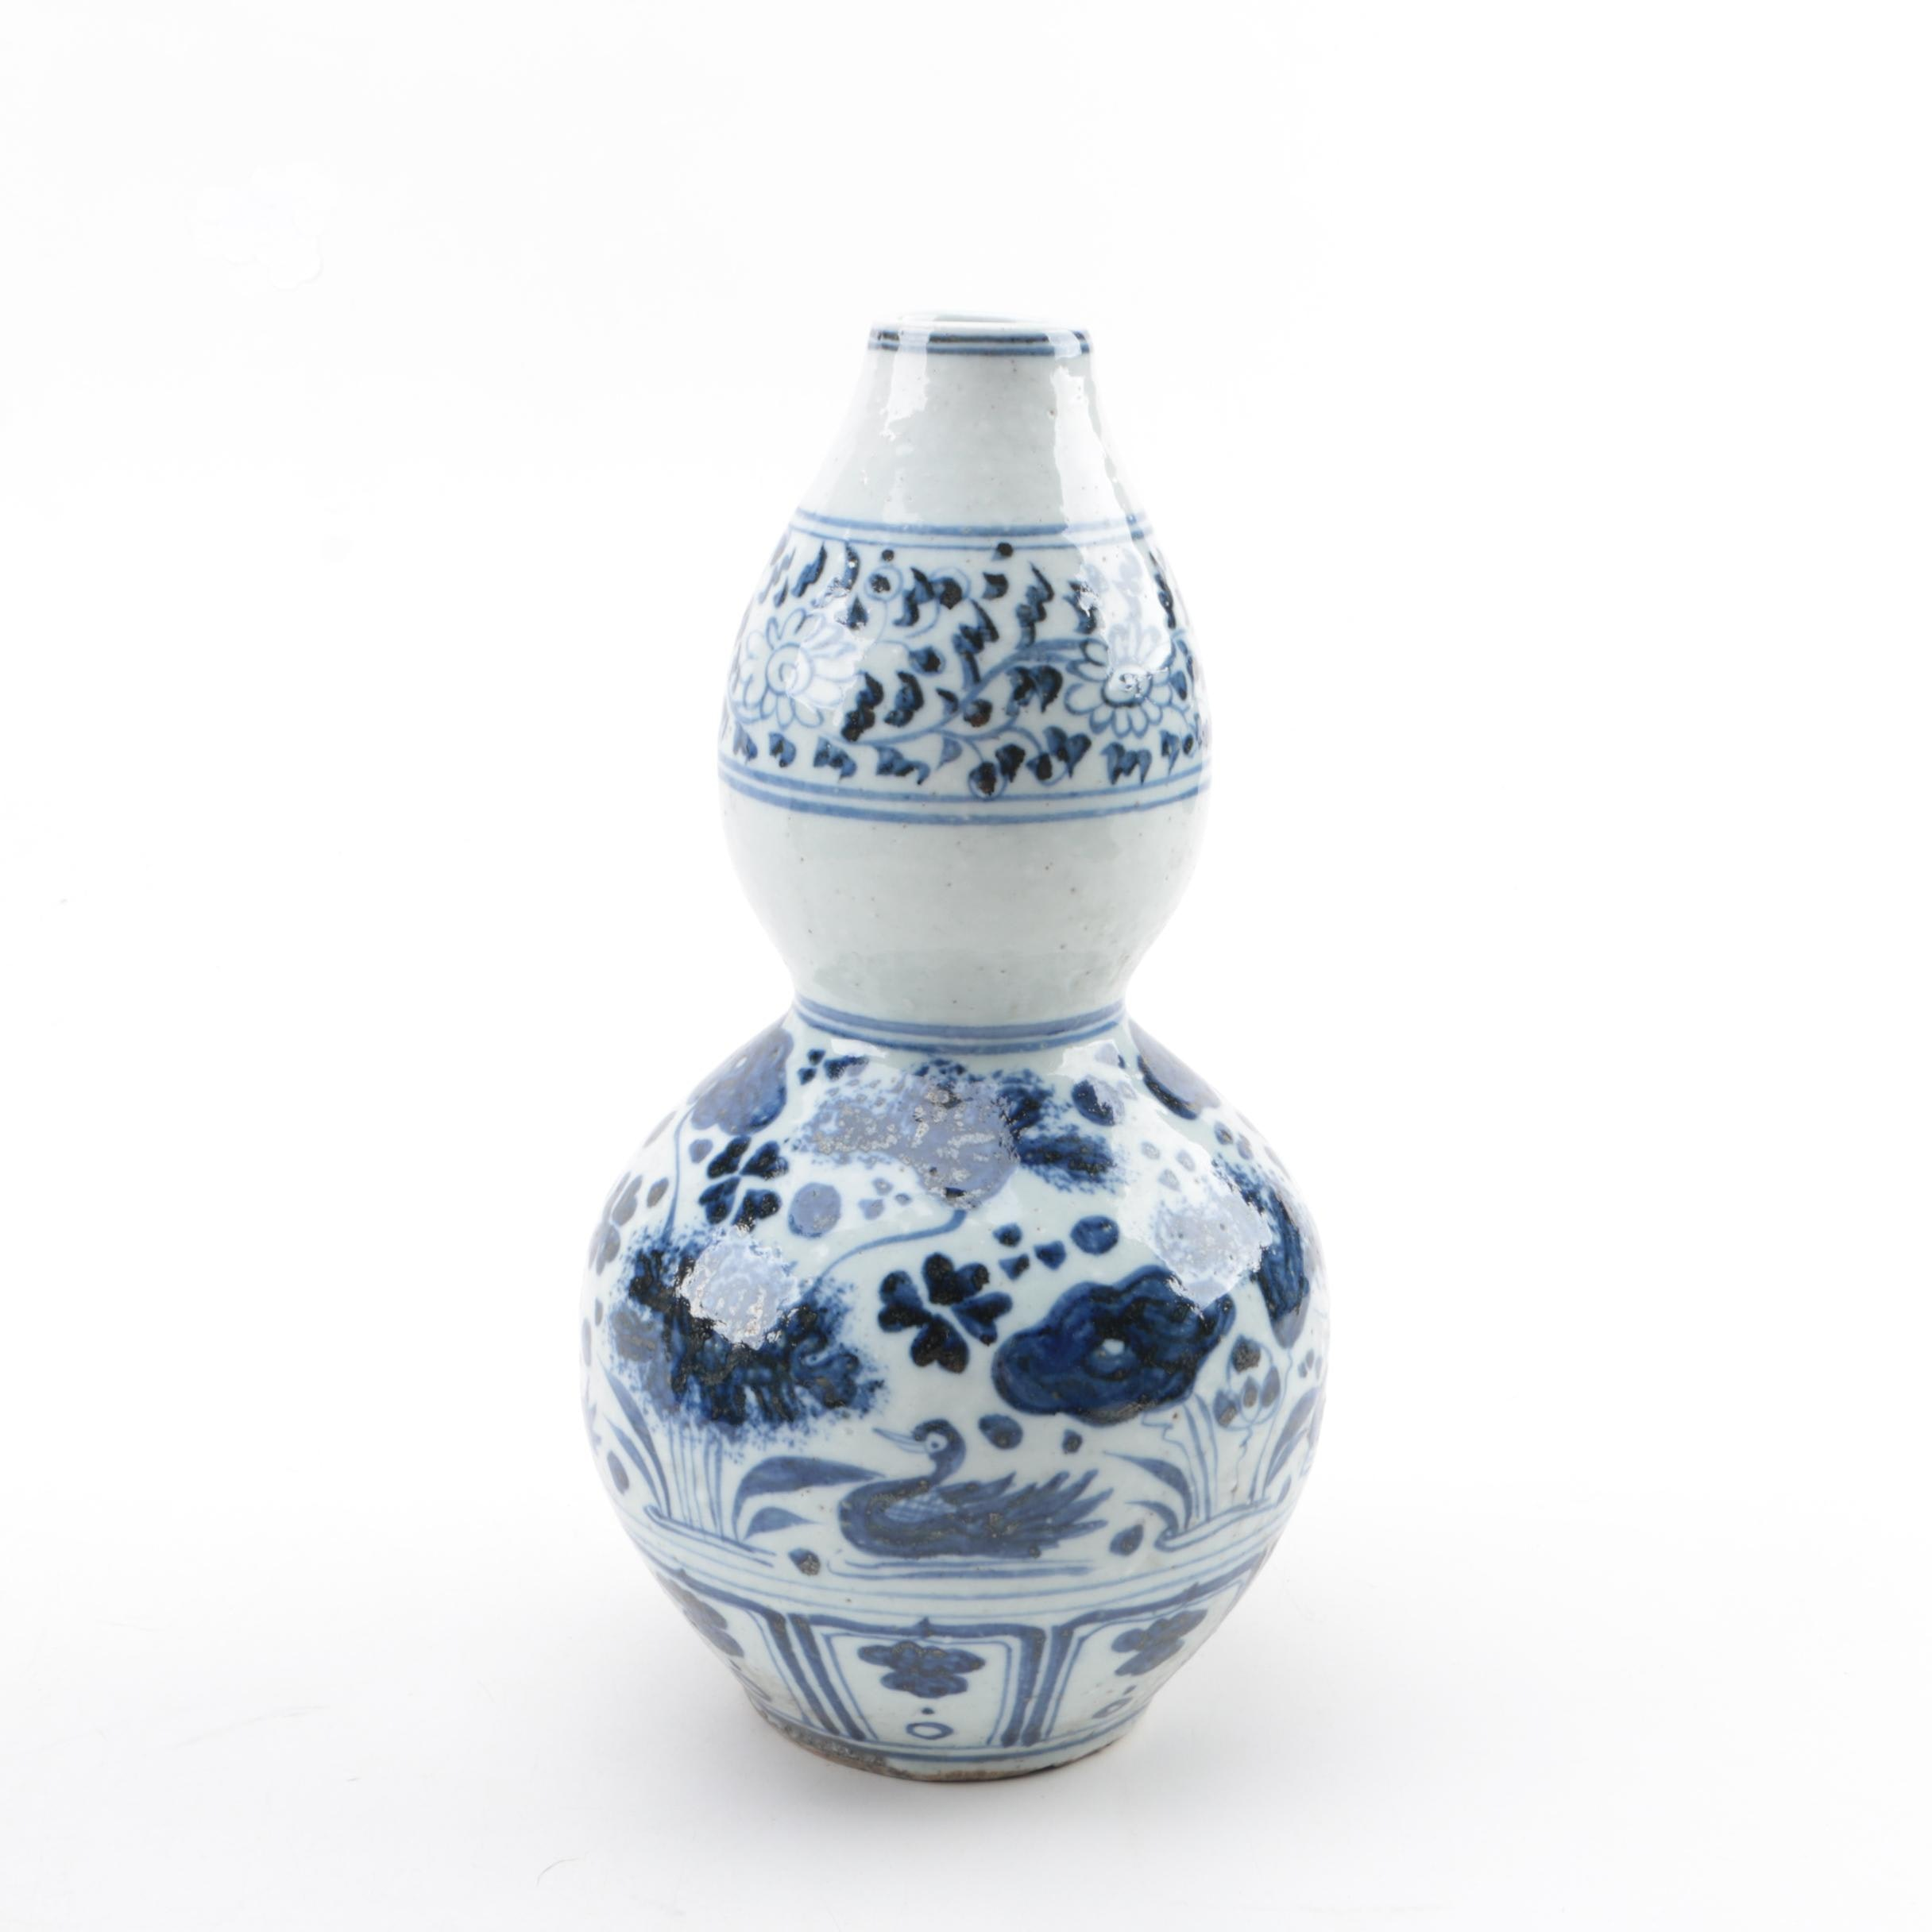 Chinese Blue and White Double-Gourd Ceramic Vase